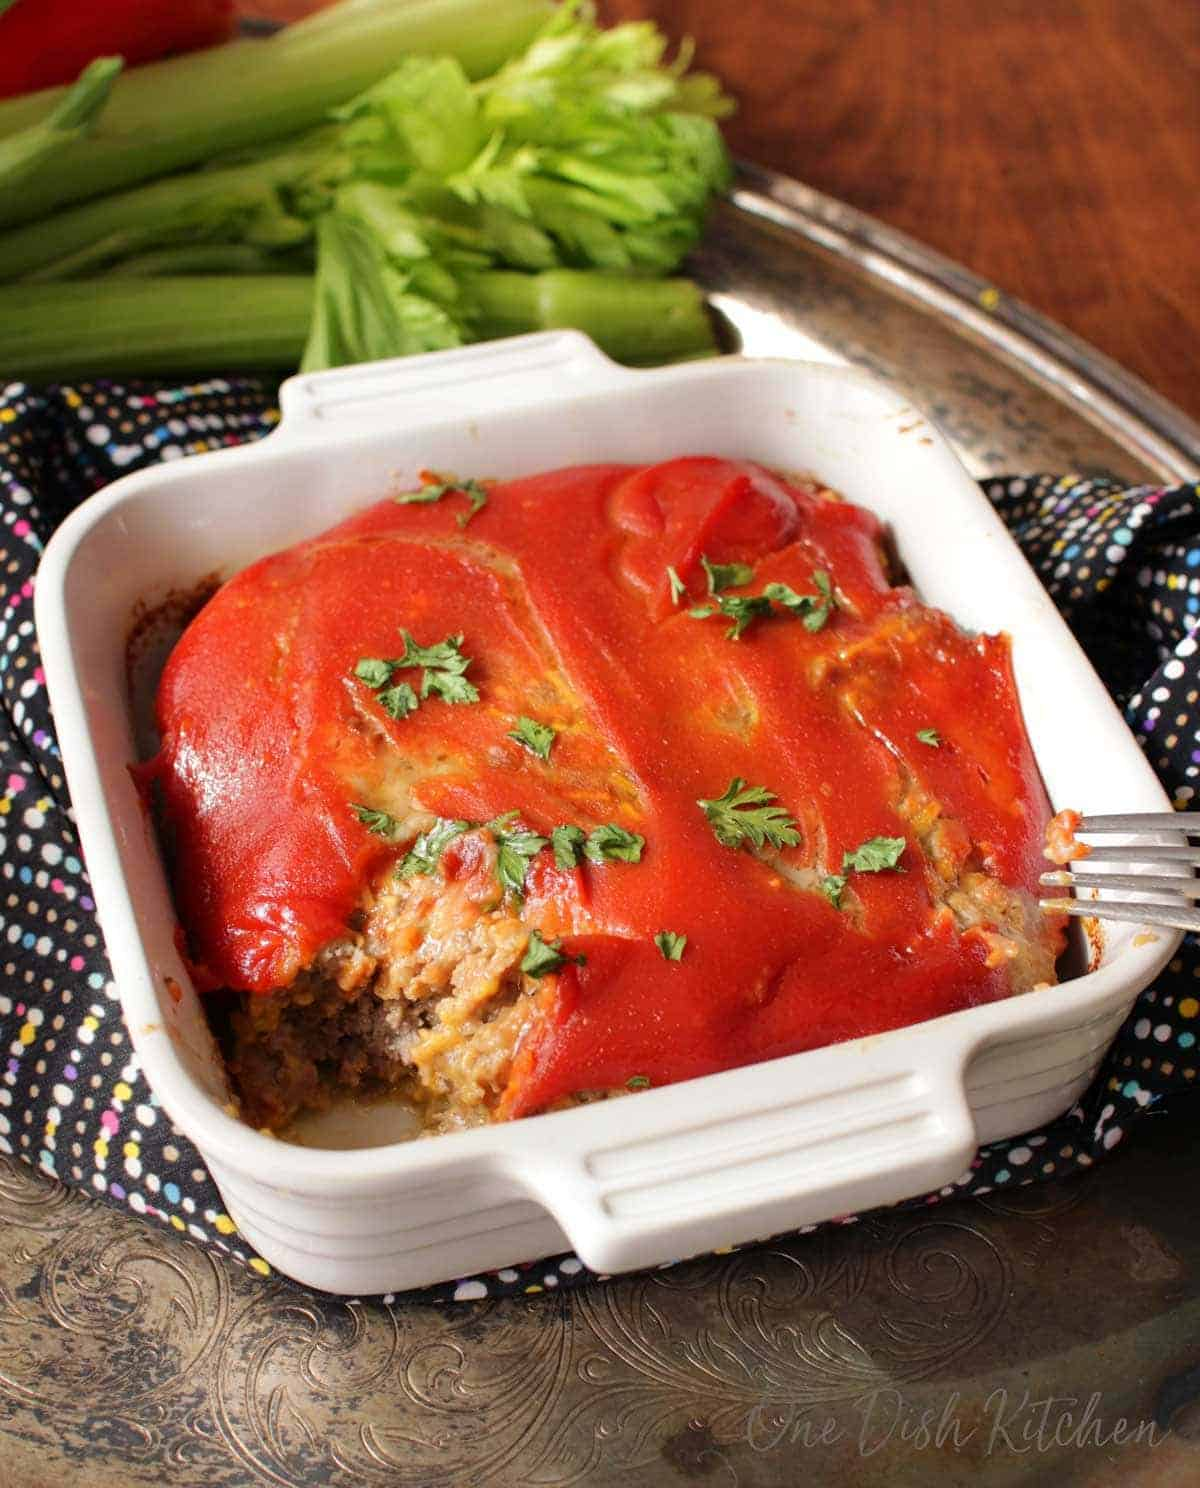 A forkful of bacon cheeseburger meatloaf missing from a small baking dish on a metal tray next to a bunch of celery